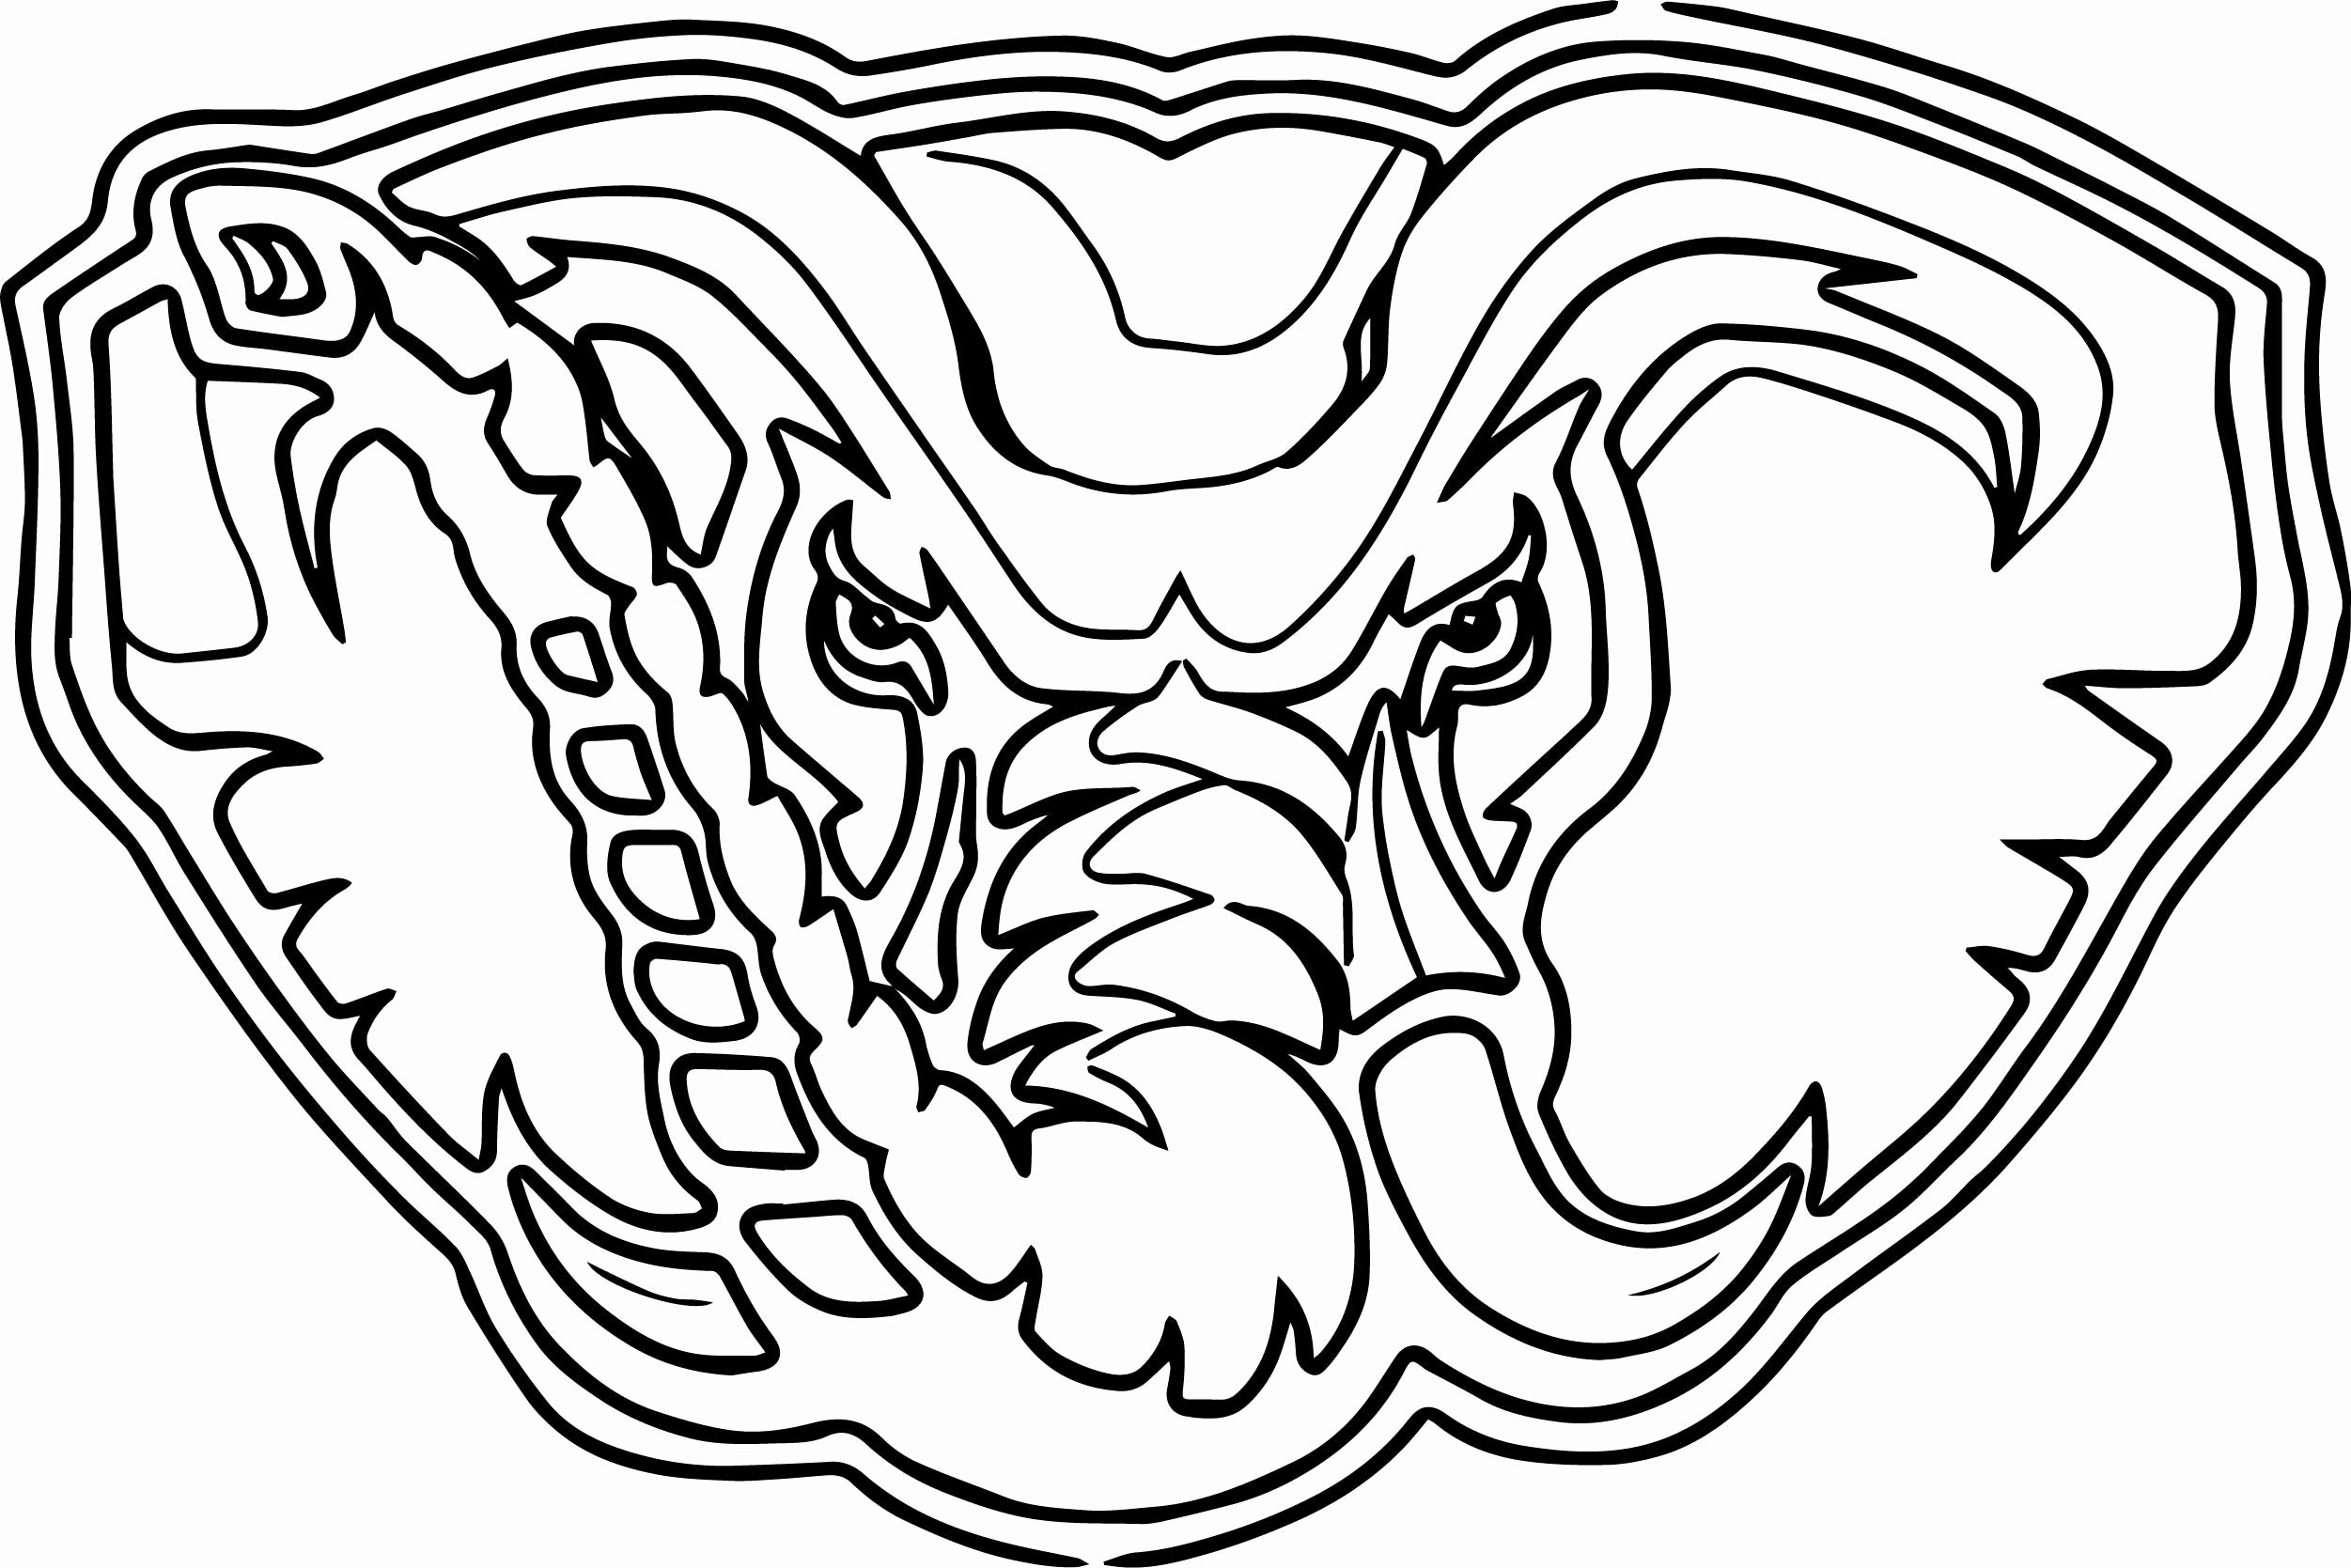 Alabama Crimson Tide Football Coloring Pages Lovely The Best Free Alabama Drawing Images Downlo Football Coloring Pages Face Outline Veterans Day Coloring Page